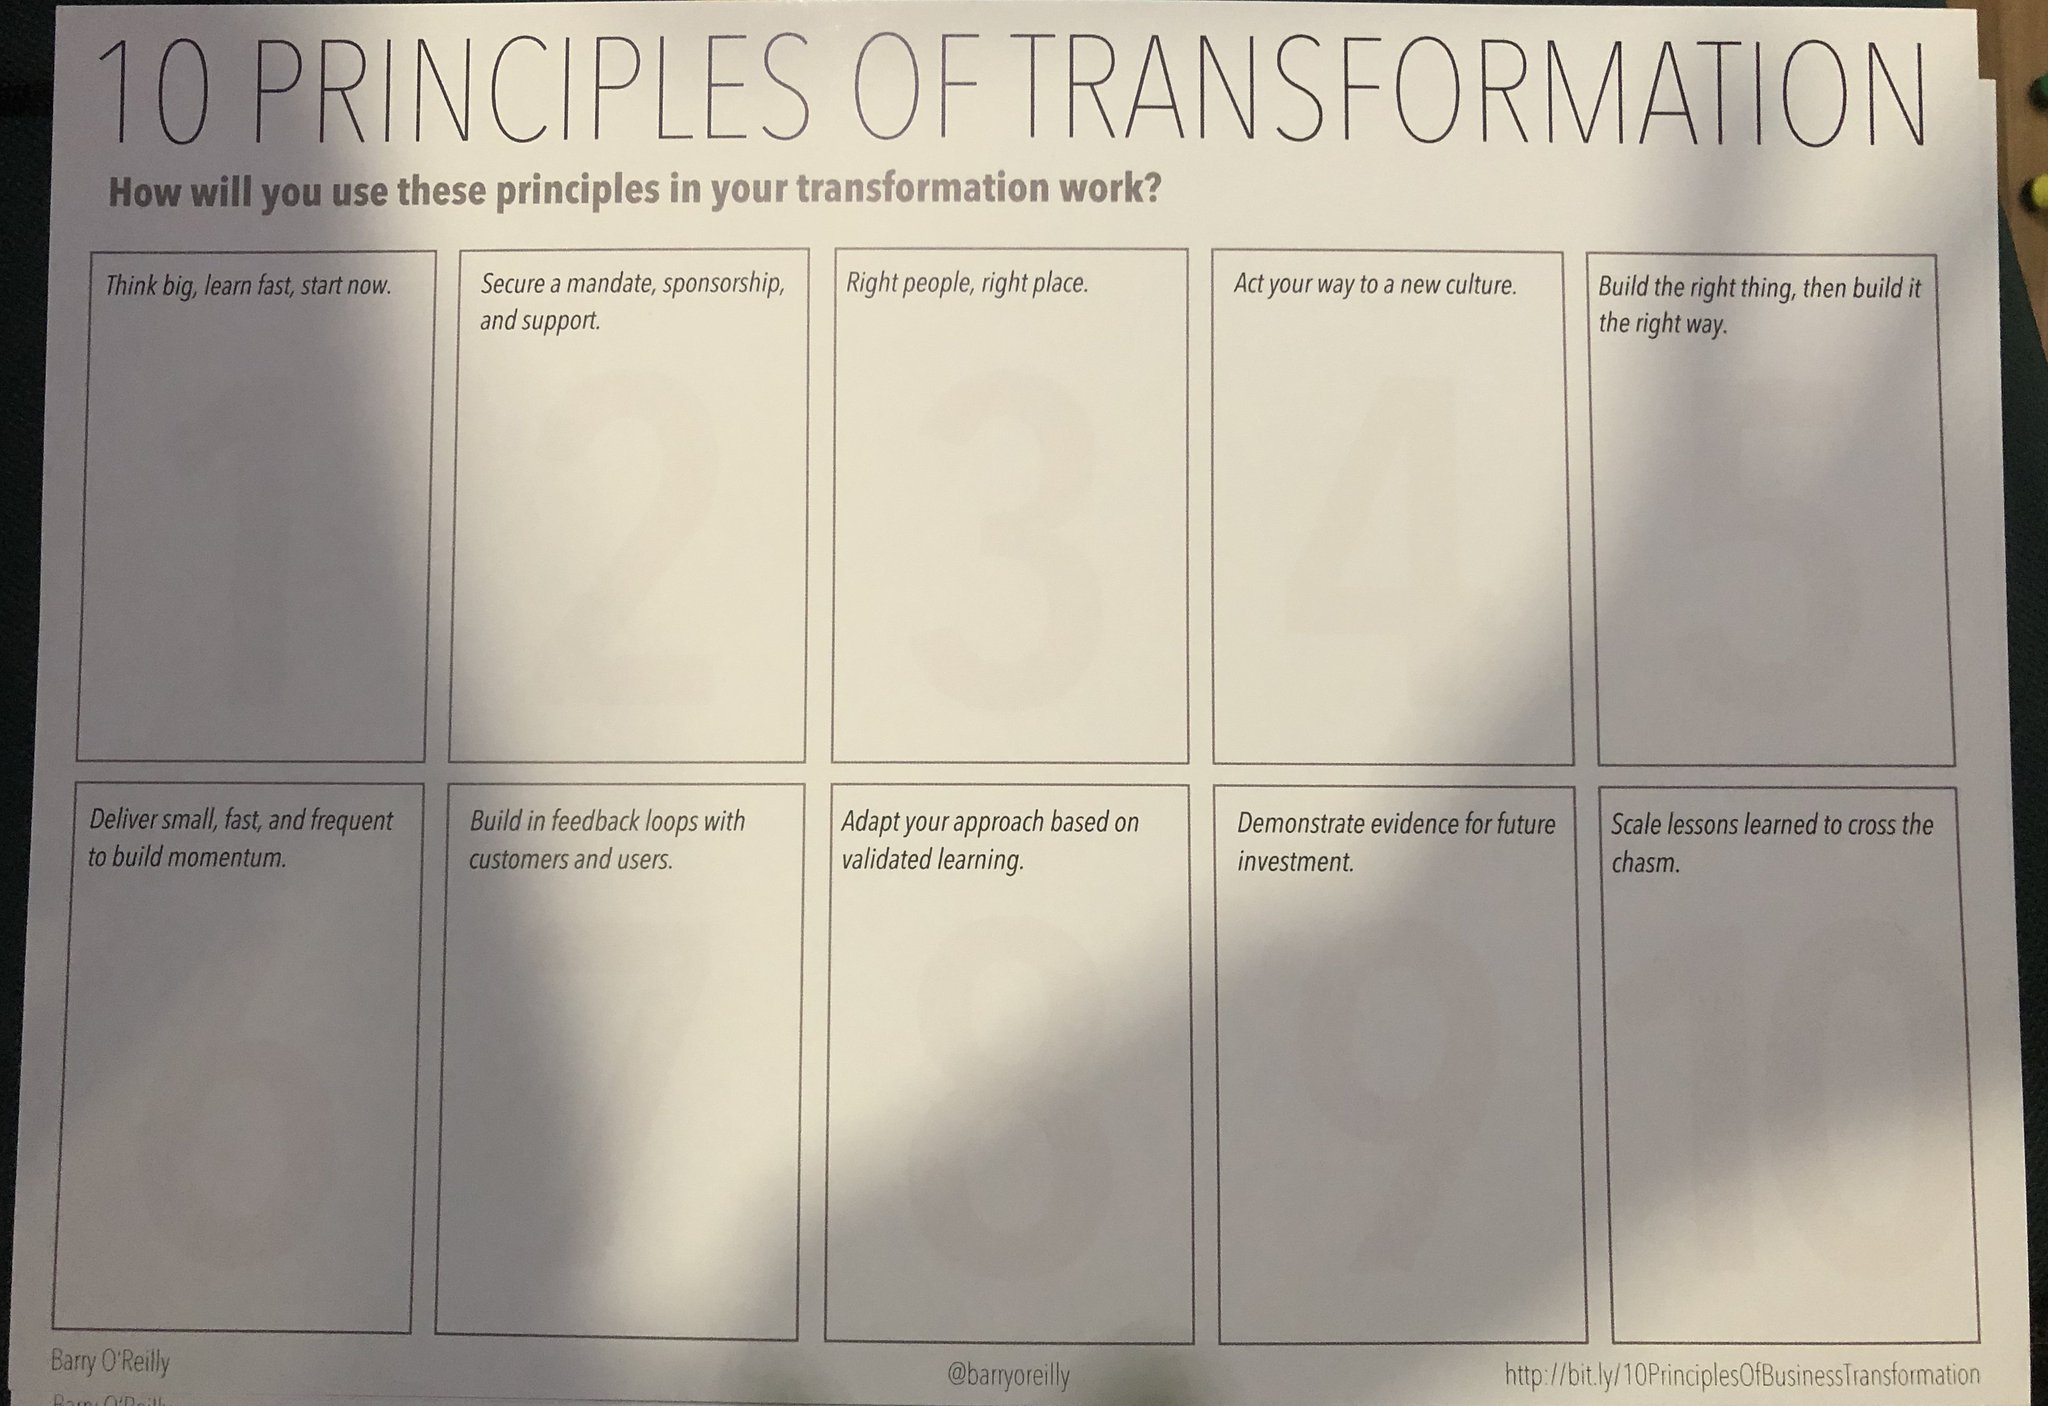 The 10 Principles of Transformation from @barryoreilly might provide guidance on transformation strategy #seacon #StrategyDeployment https://t.co/WiavPbiBnk